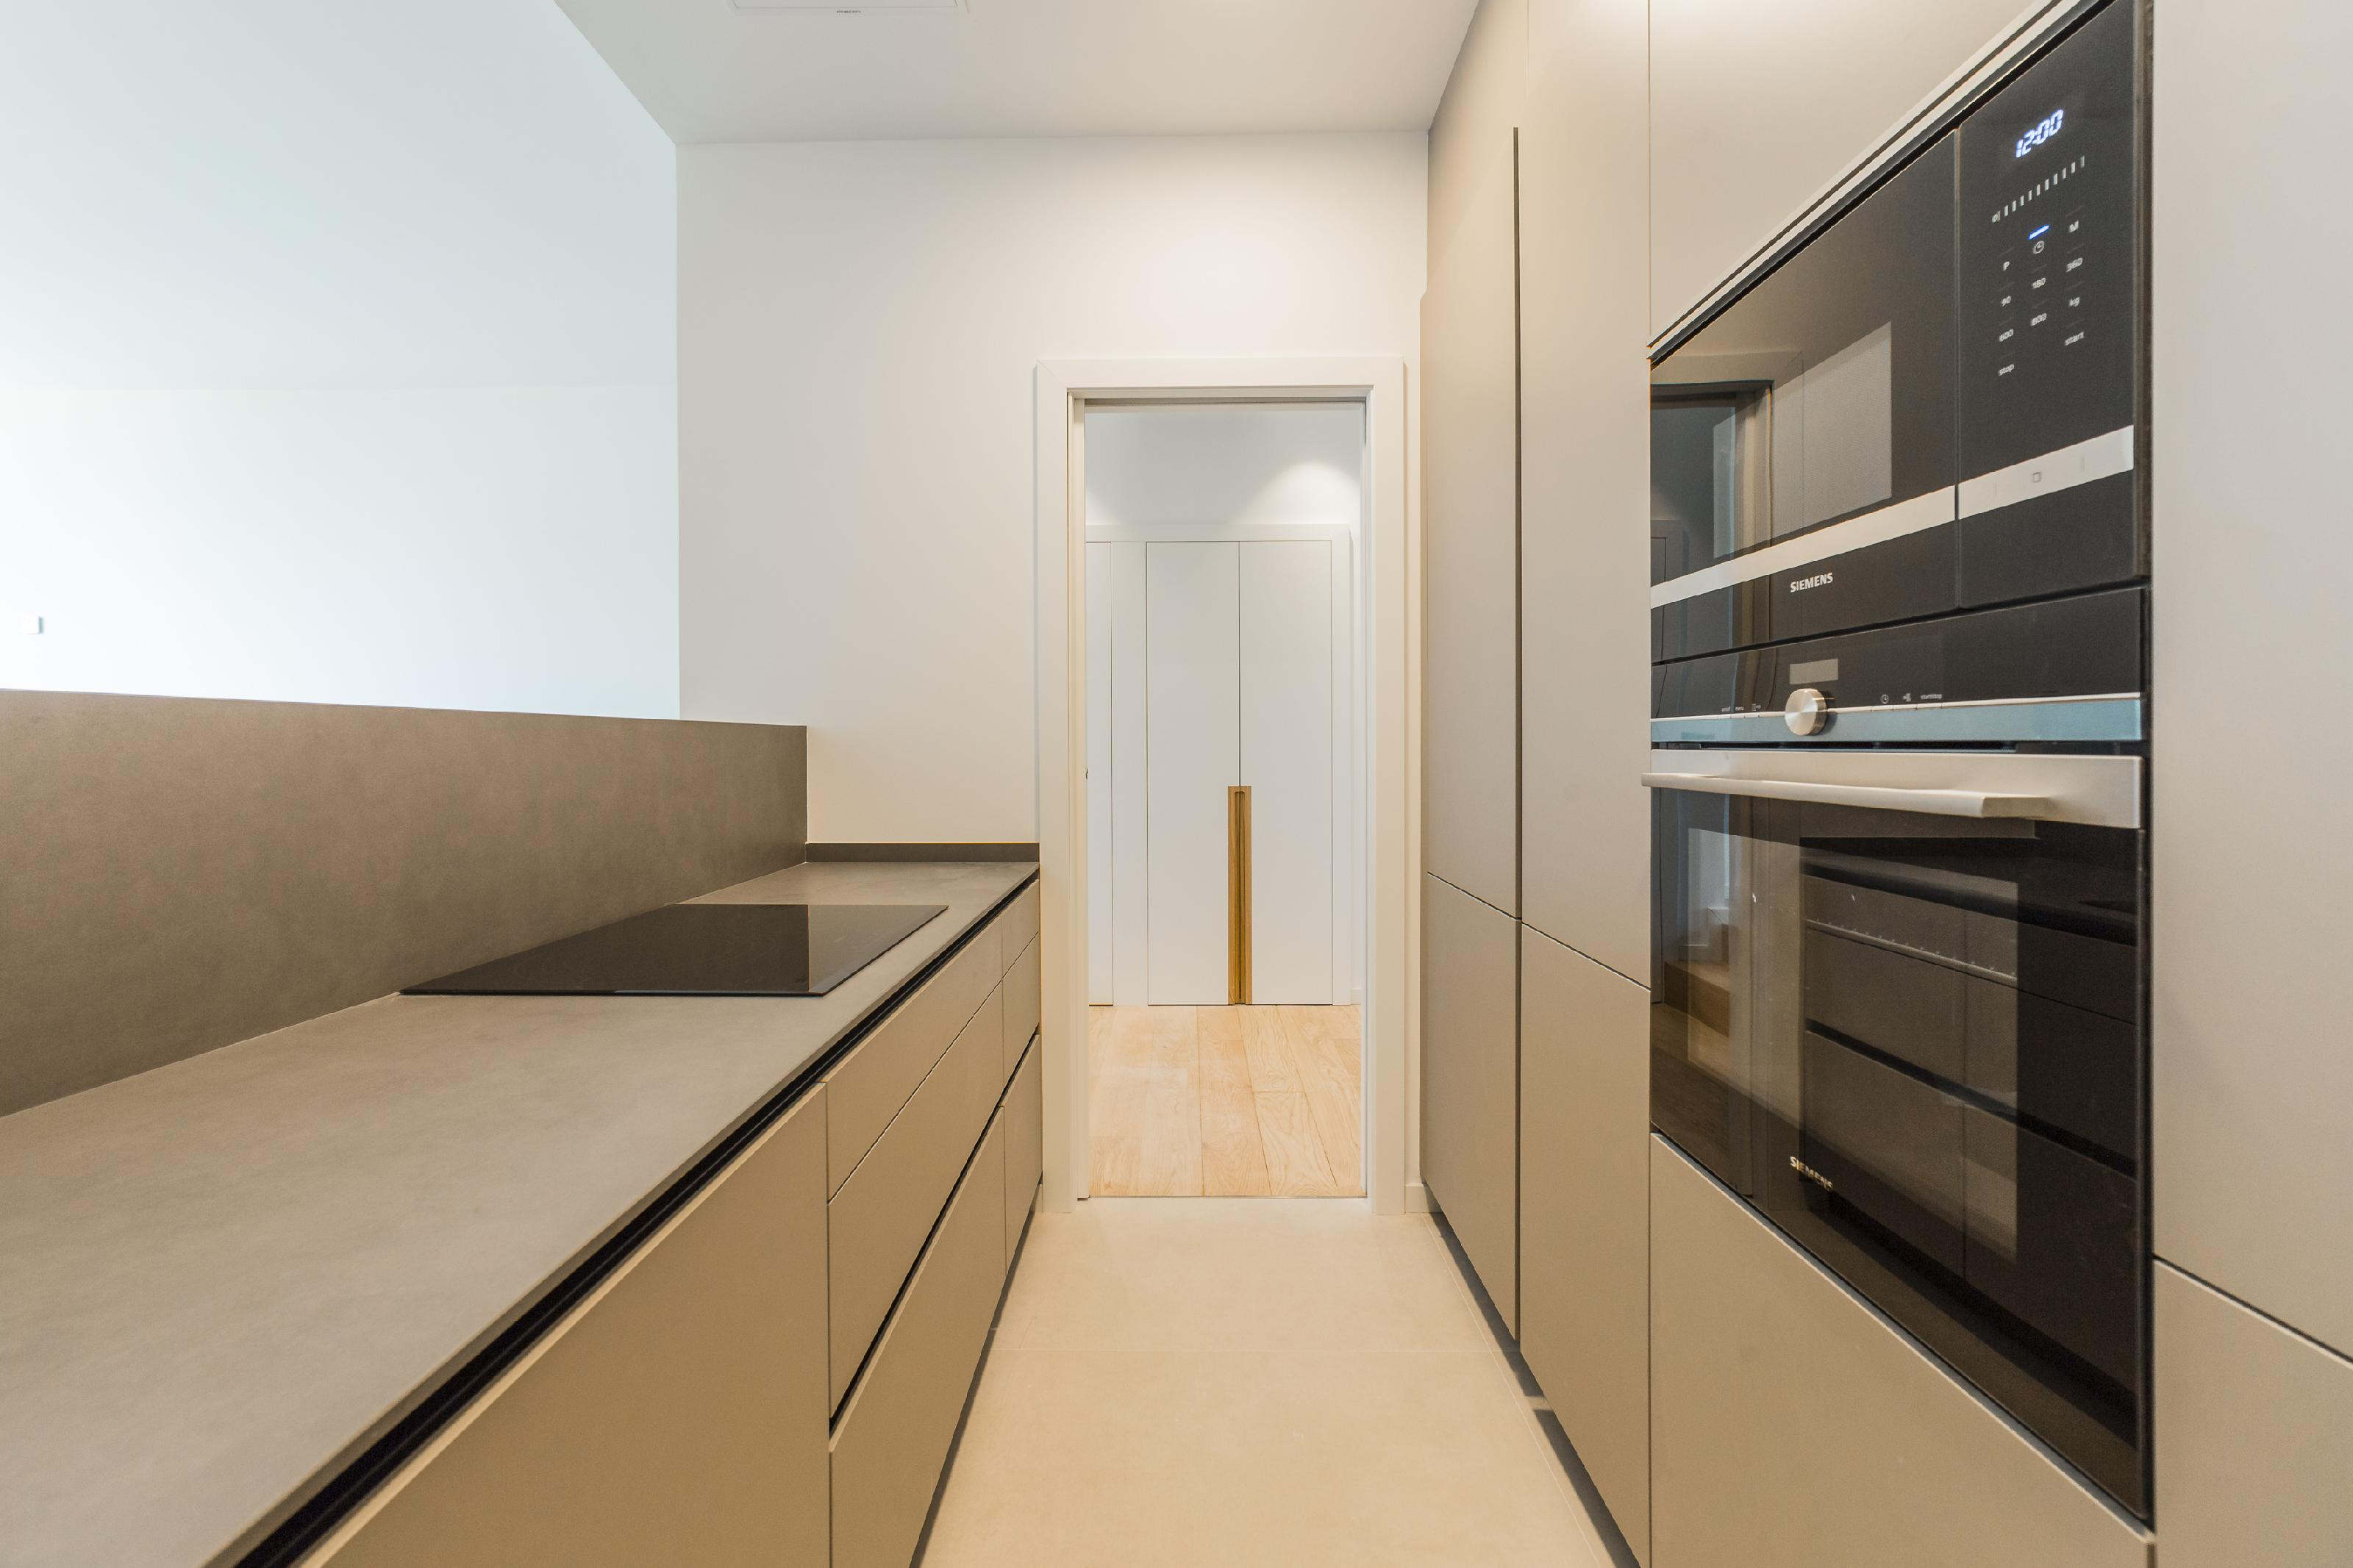 182474 Apartment for sale in Eixample, Old Left Eixample 10